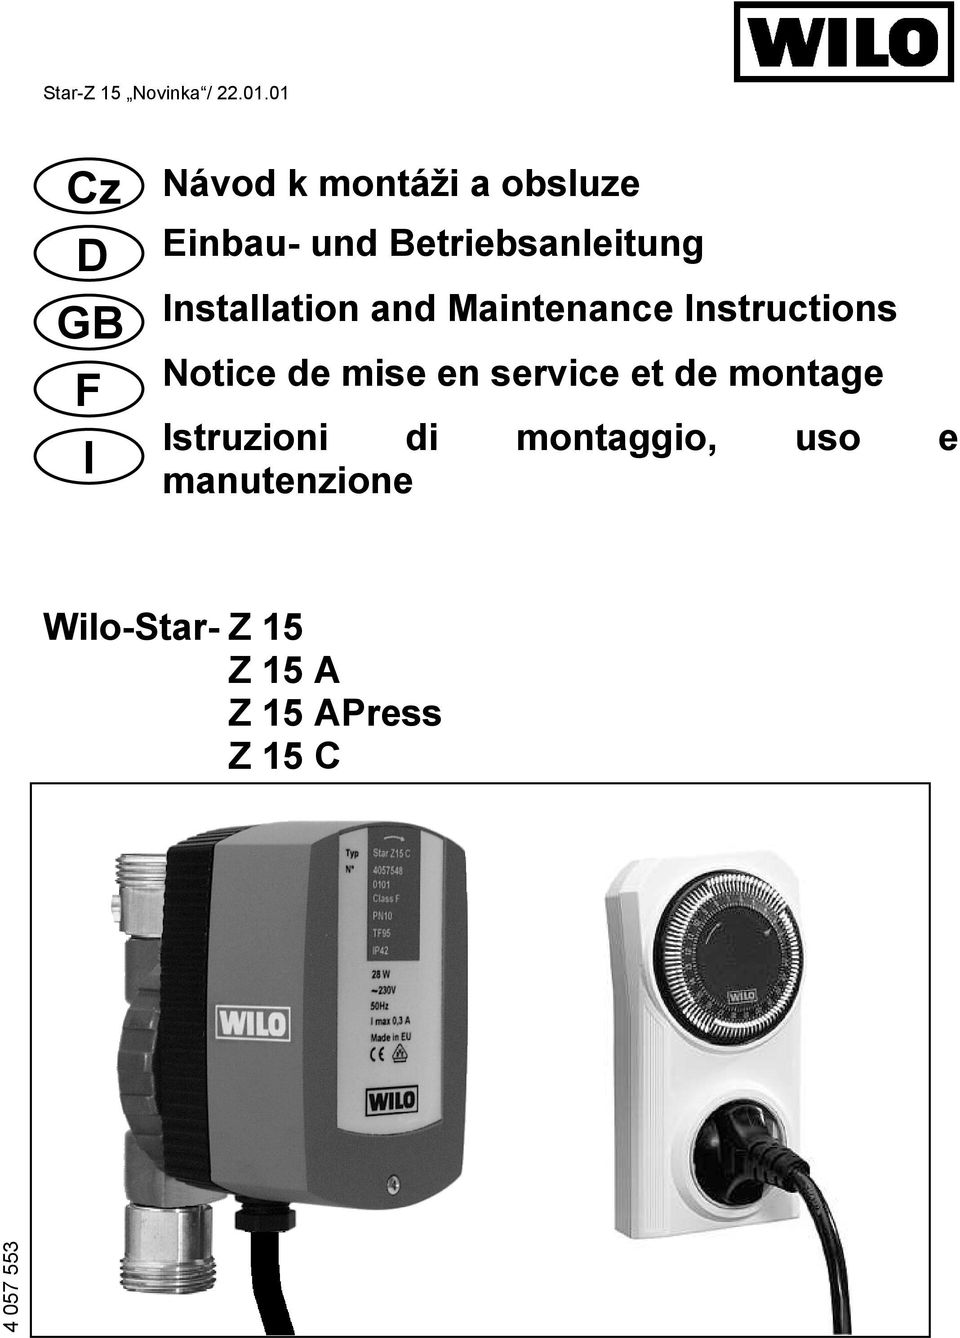 Betriebsanleitung Installation and Maintenance Instructions Notice